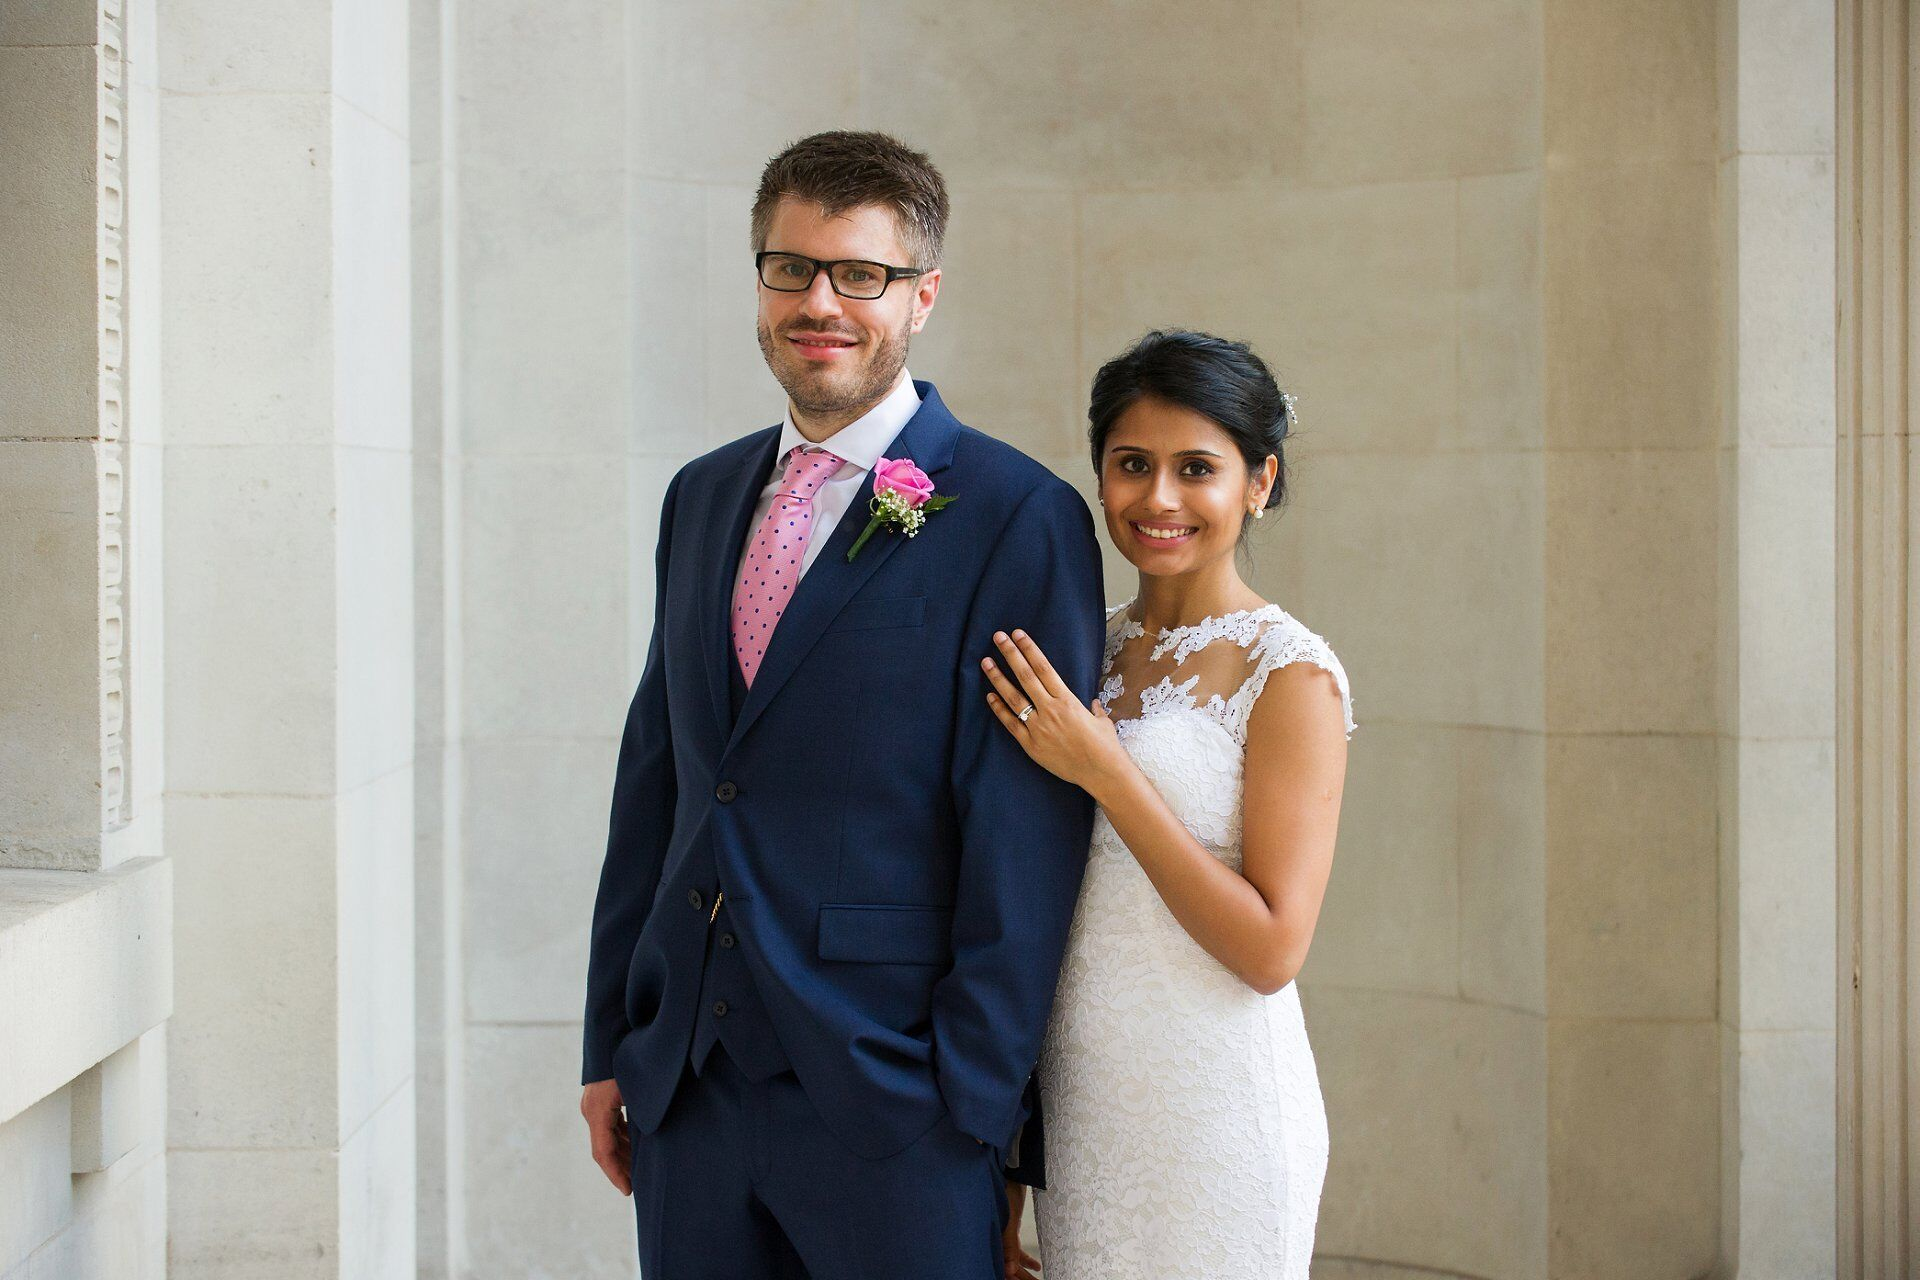 westminster register office wedding photography by short coverage specialist emma duggan